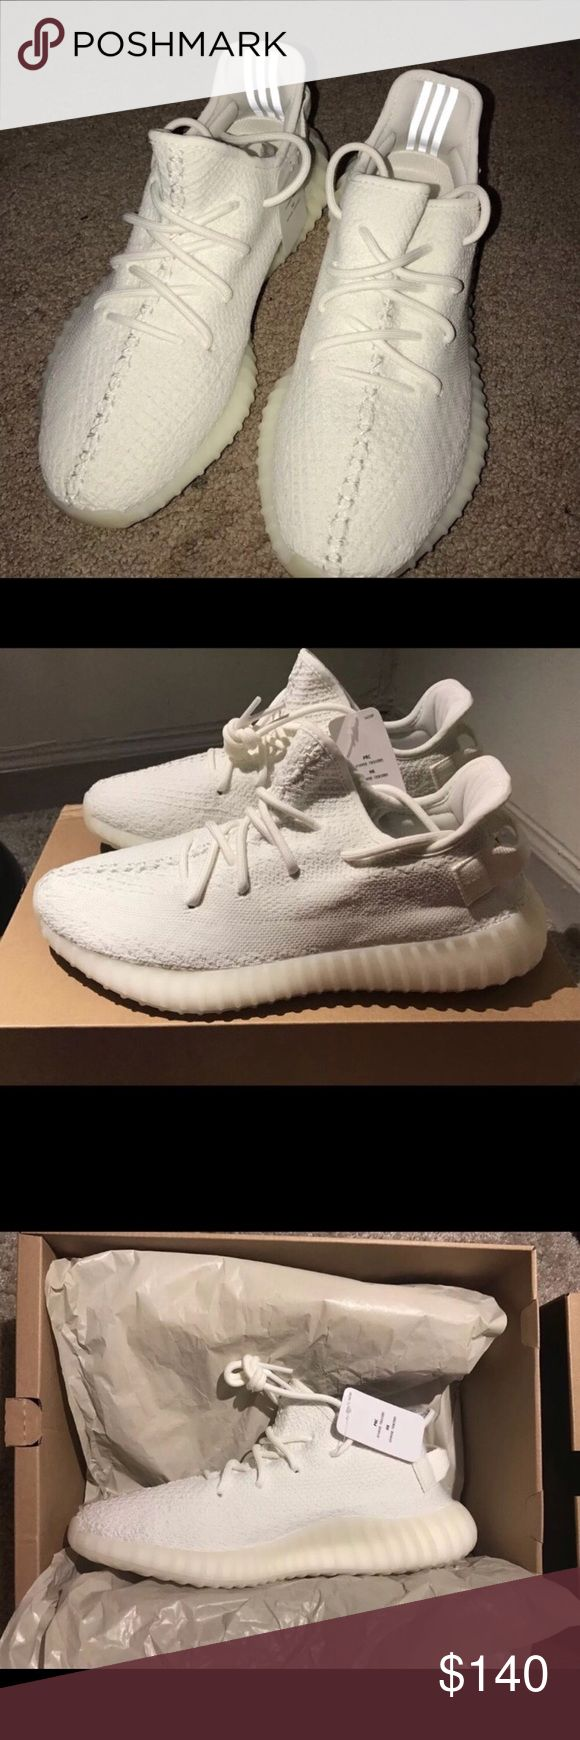 Yeezy Boost 360 V2 Cream Serious Buyers Only. Worn once. Christmas limited time special. Payments accepted only from paypal and venmo. Contact me at (339) 444-4527 Yeezy Shoes Sneakers